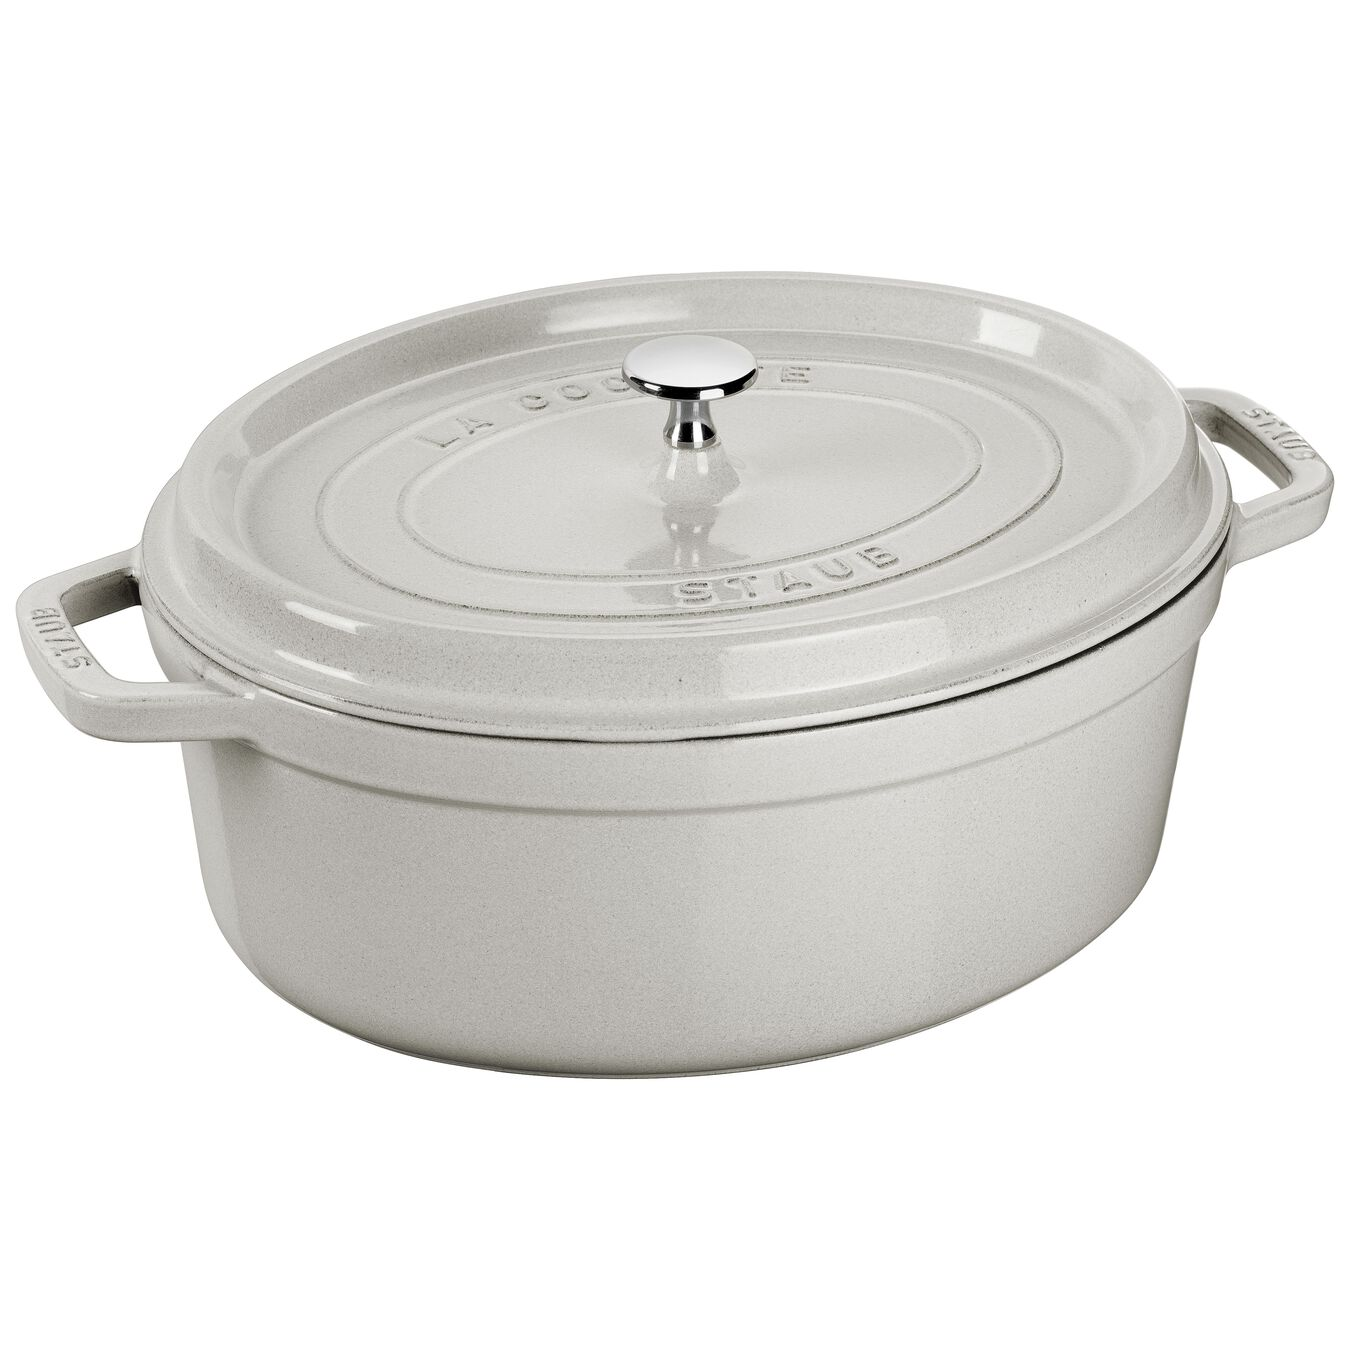 3.25 l Cast iron oval Cocotte, White Truffle,,large 1